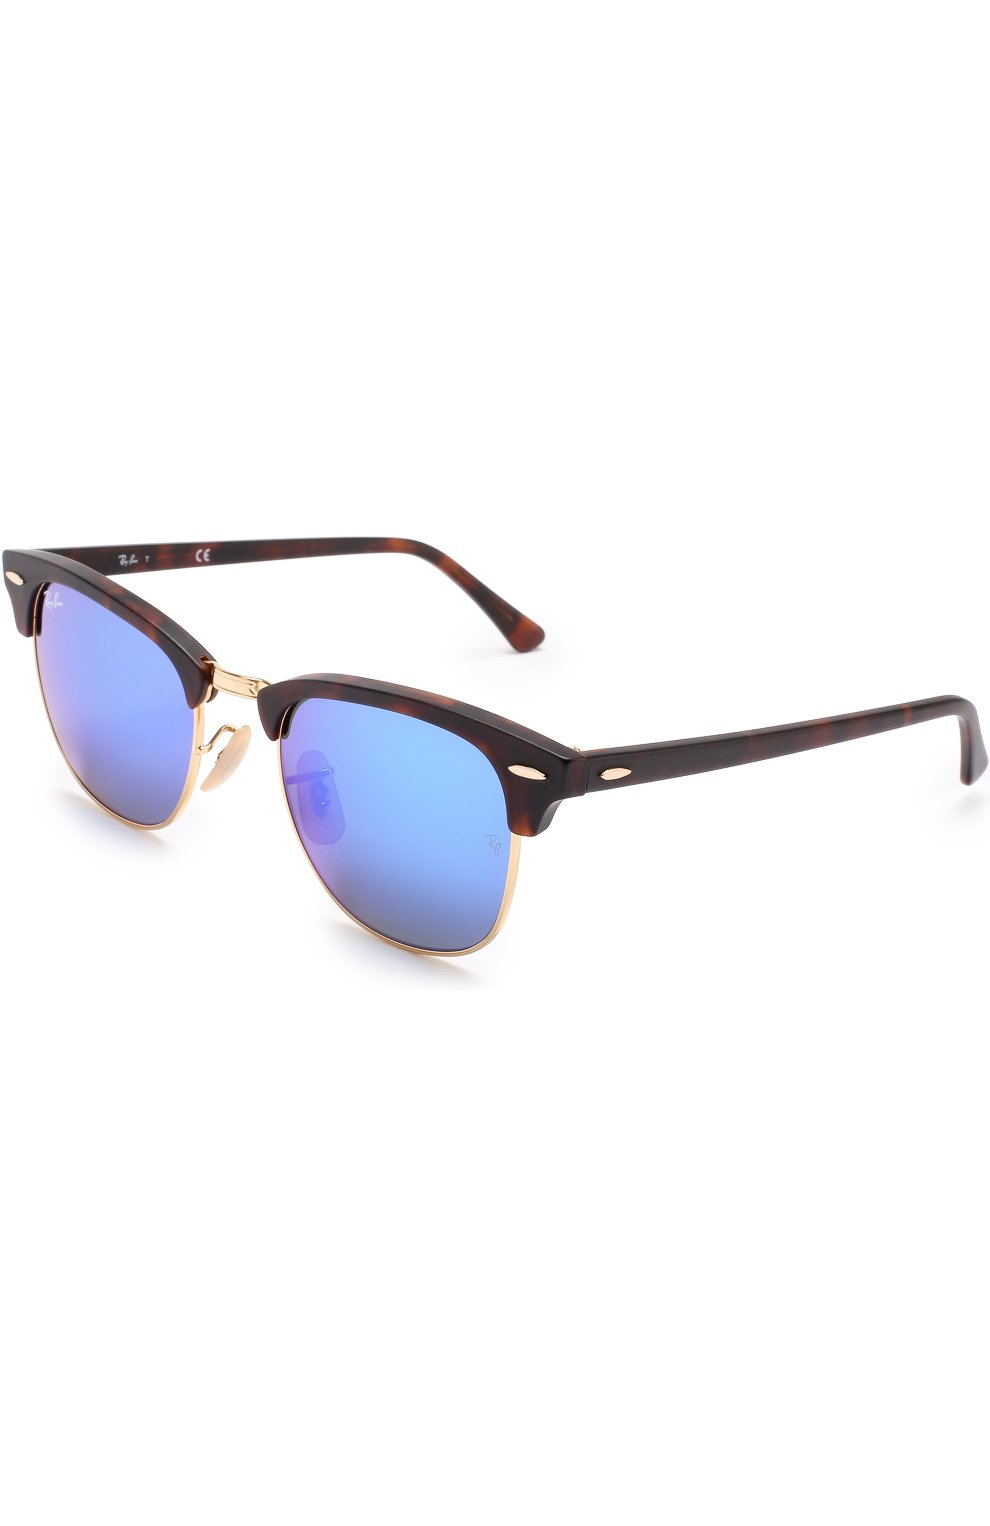 8a8fb4bee4 Ray Ban Za 46 34 42 « One More Soul